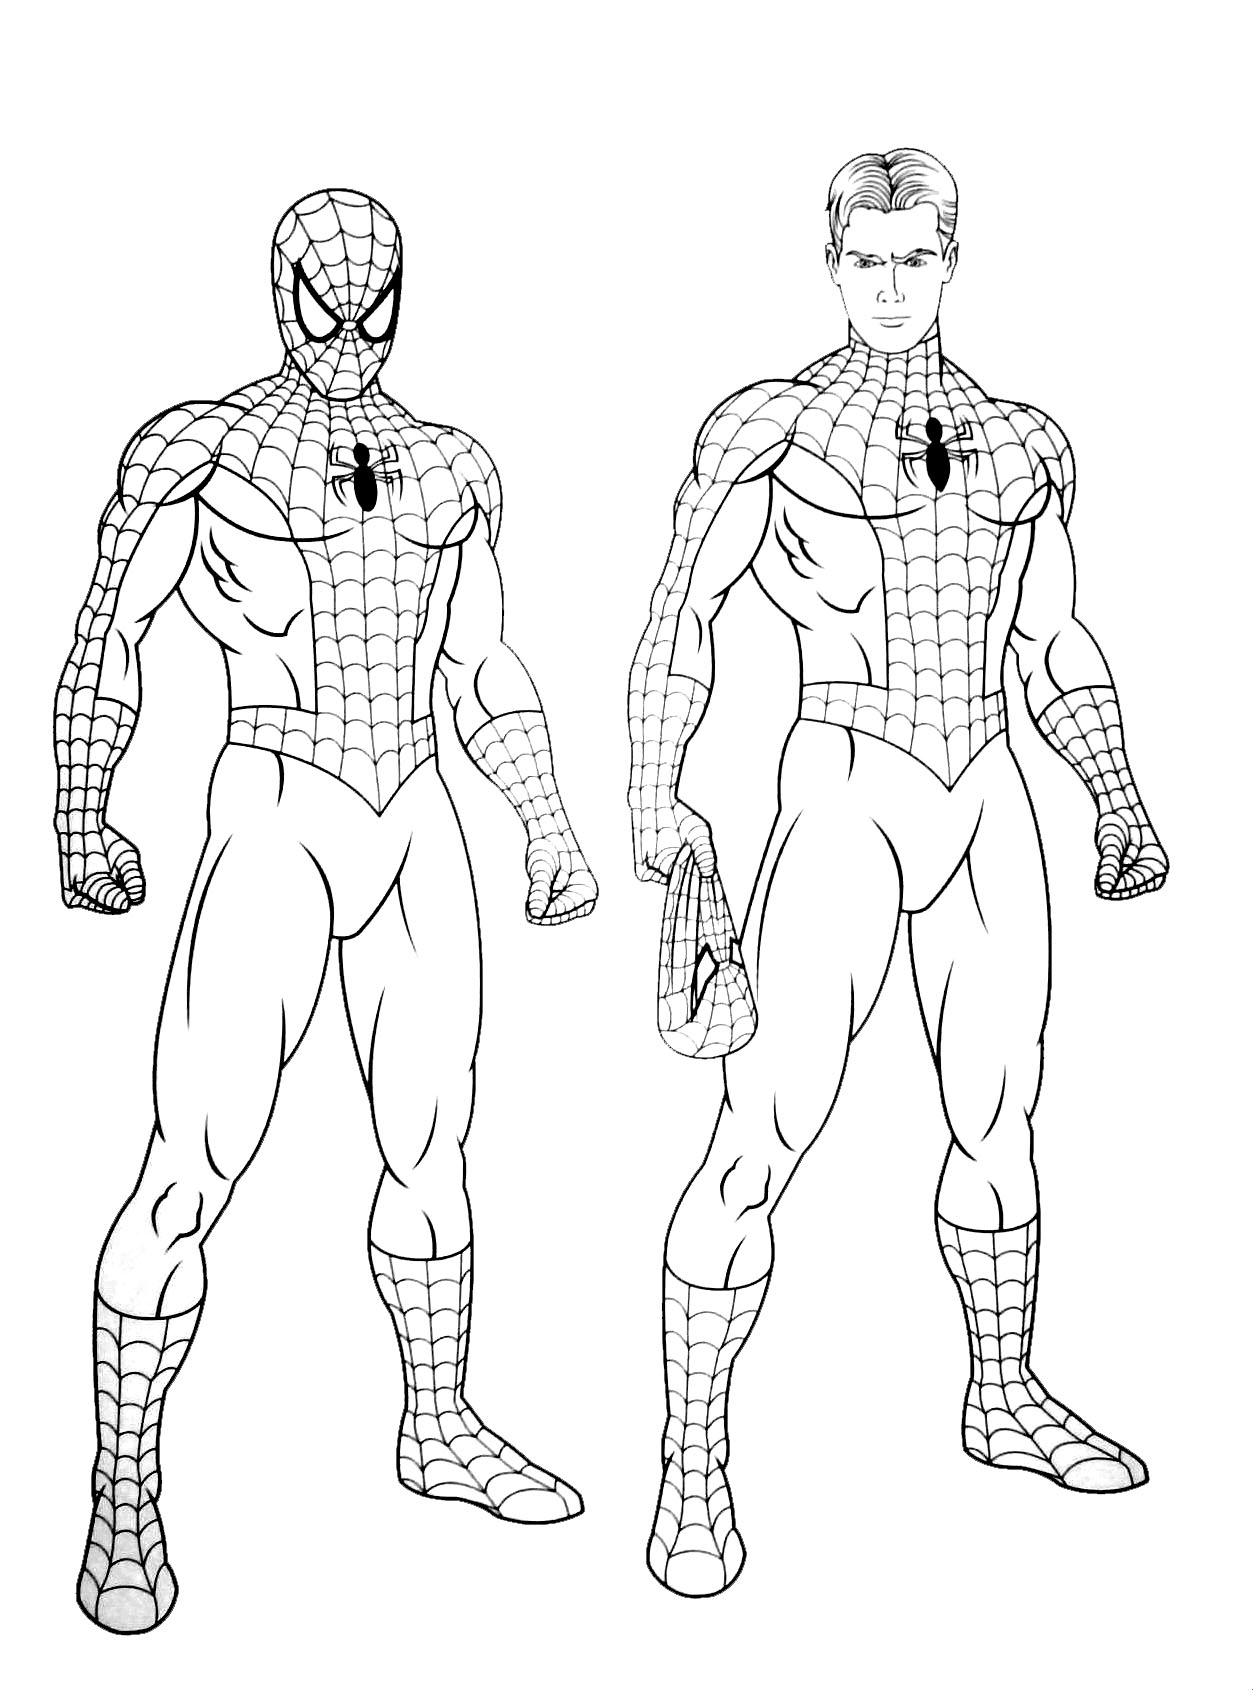 Spiderman Free To Color For Kids Spiderman Kids Coloring Pages